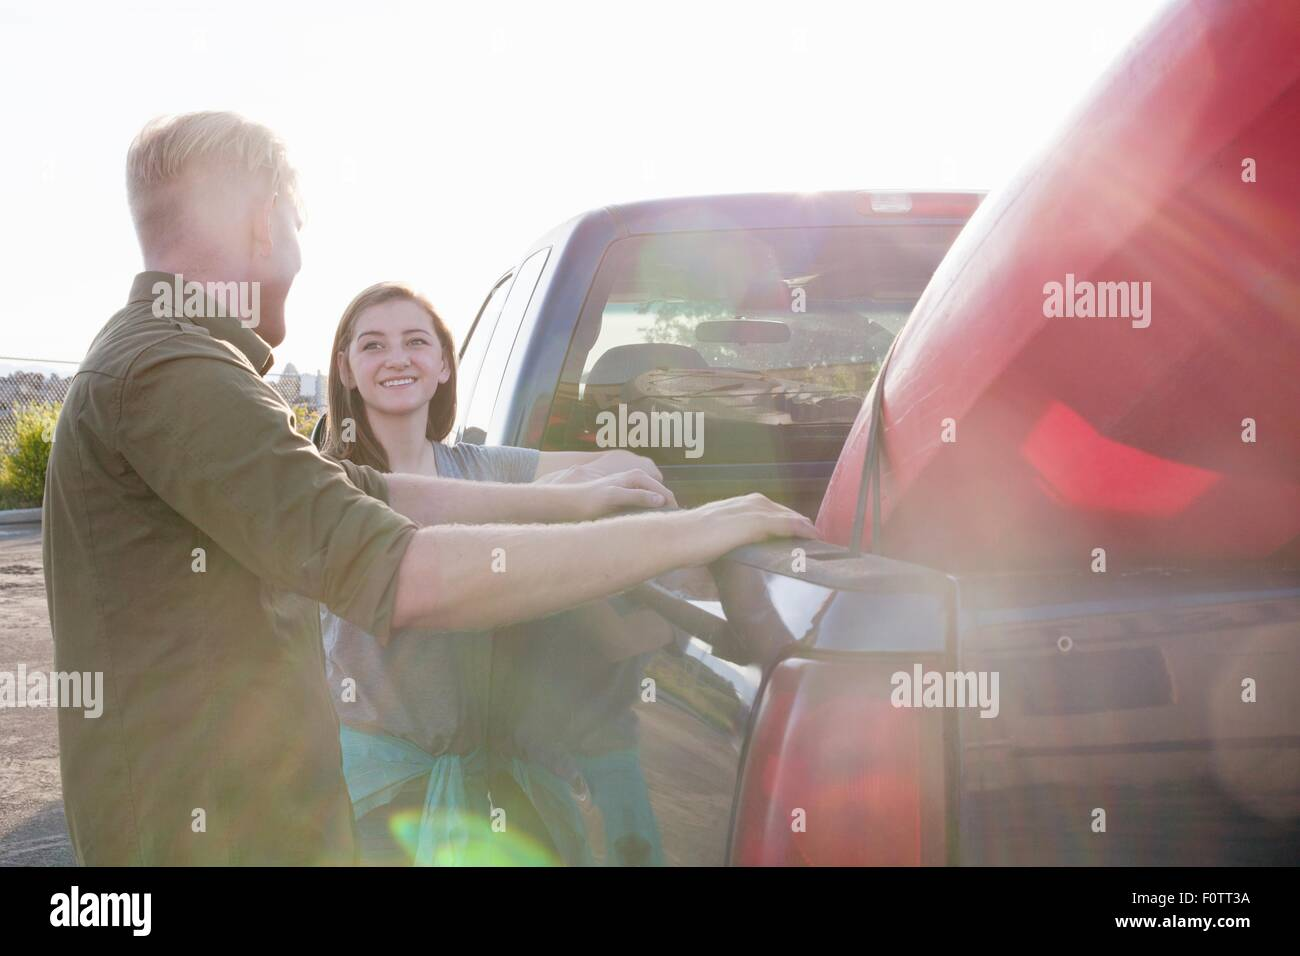 Young couple leaning against pick up truck, looking at each other smiling, lens flare - Stock Image